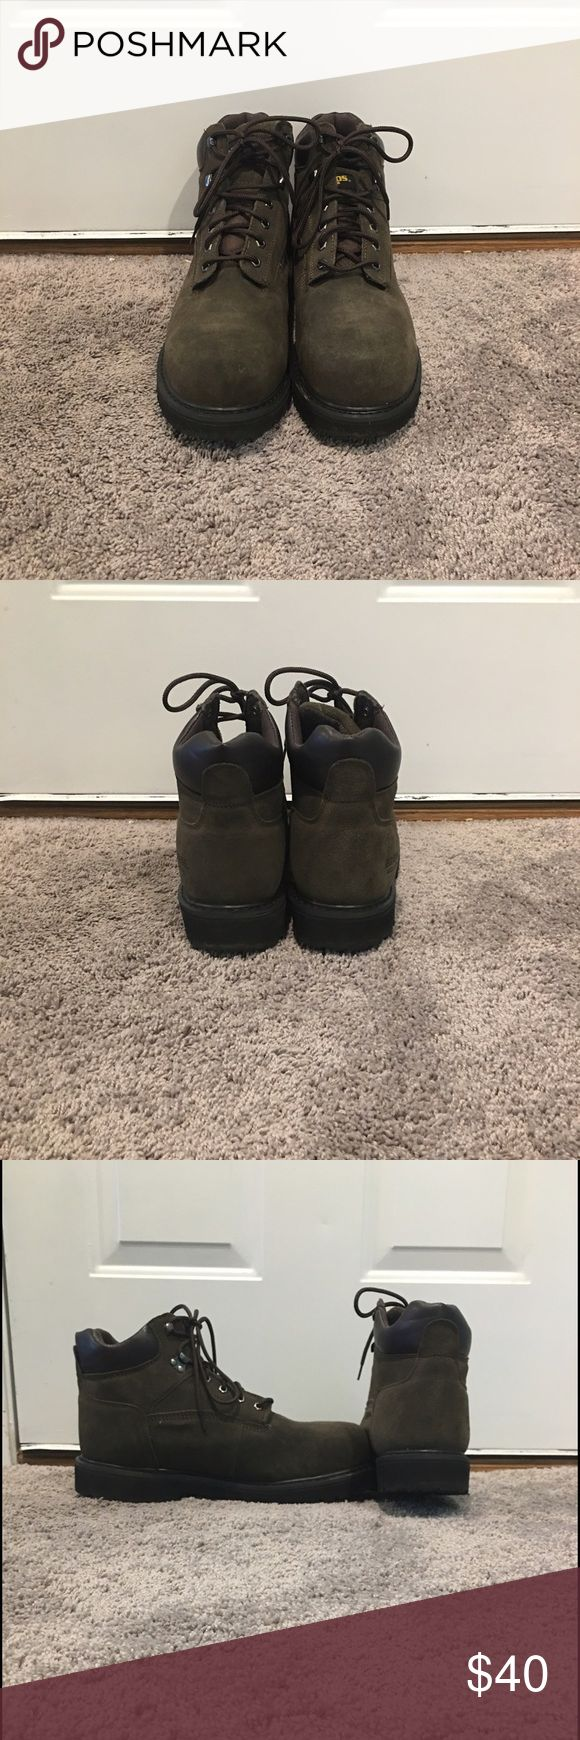 Men's Boots Men's steel toe work boots, in great condition, barely worn BRAZOS Shoes Boots